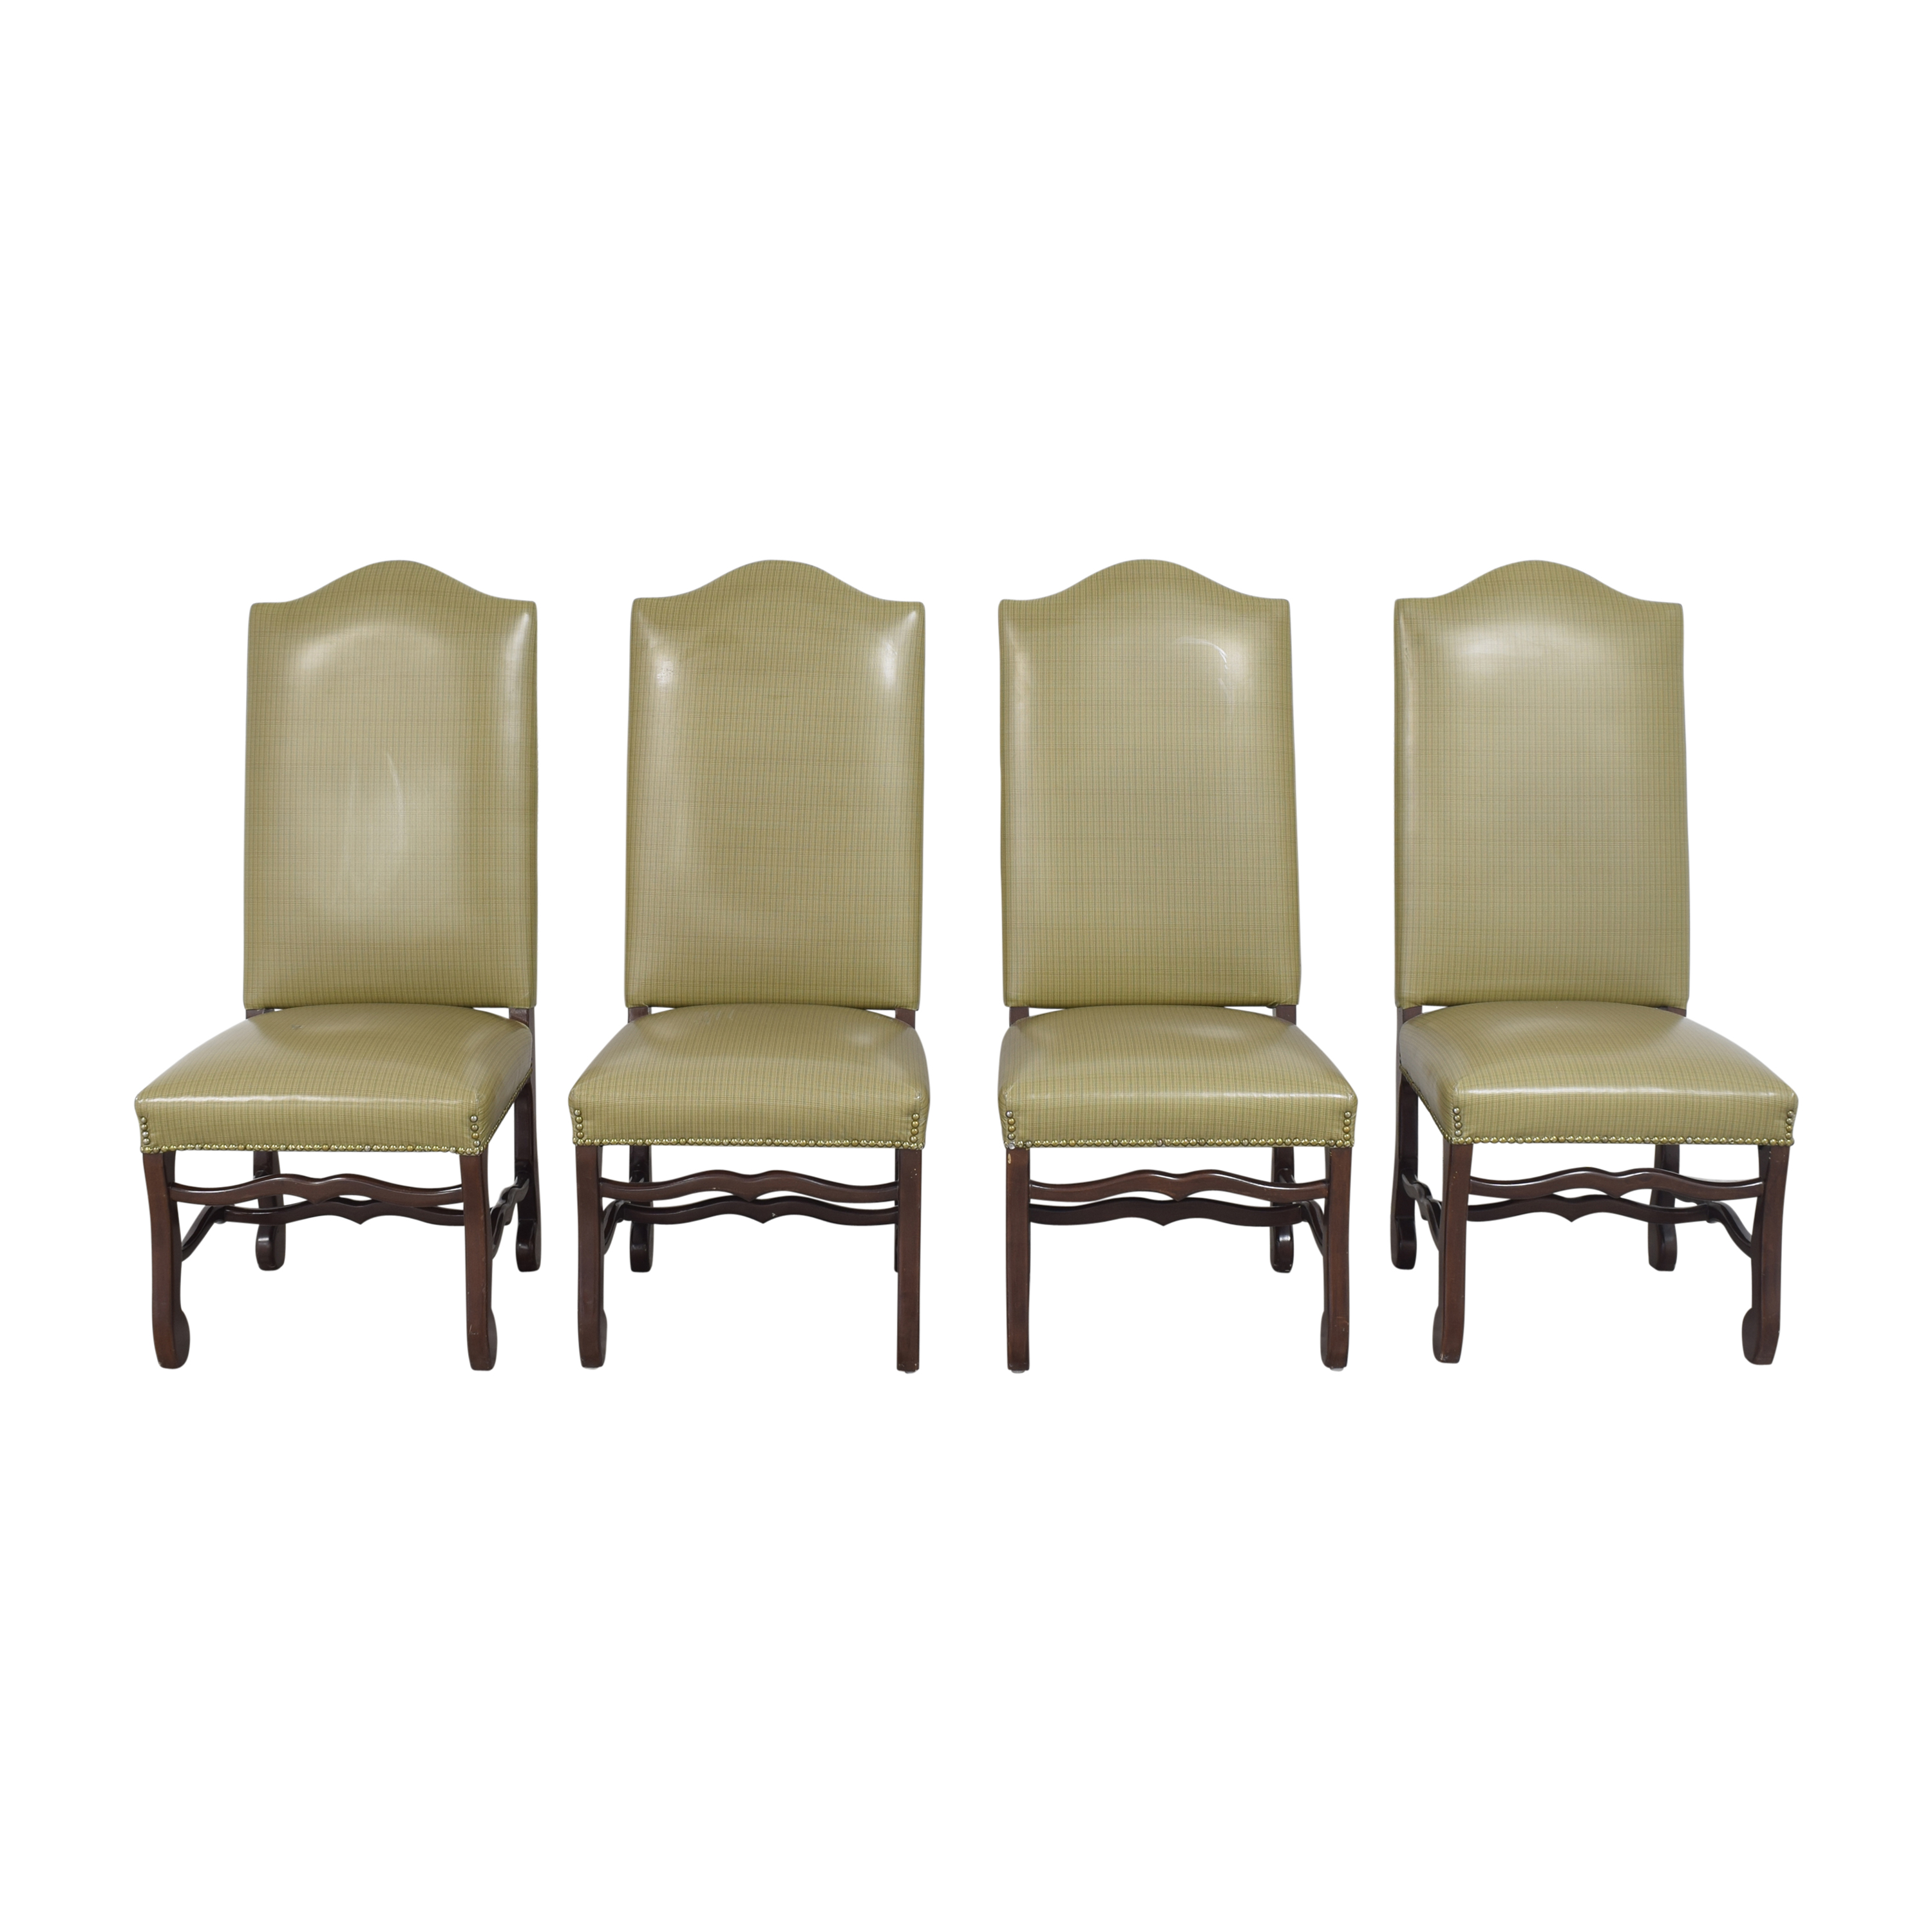 Pearson Pearson Plaid Dining Chairs second hand